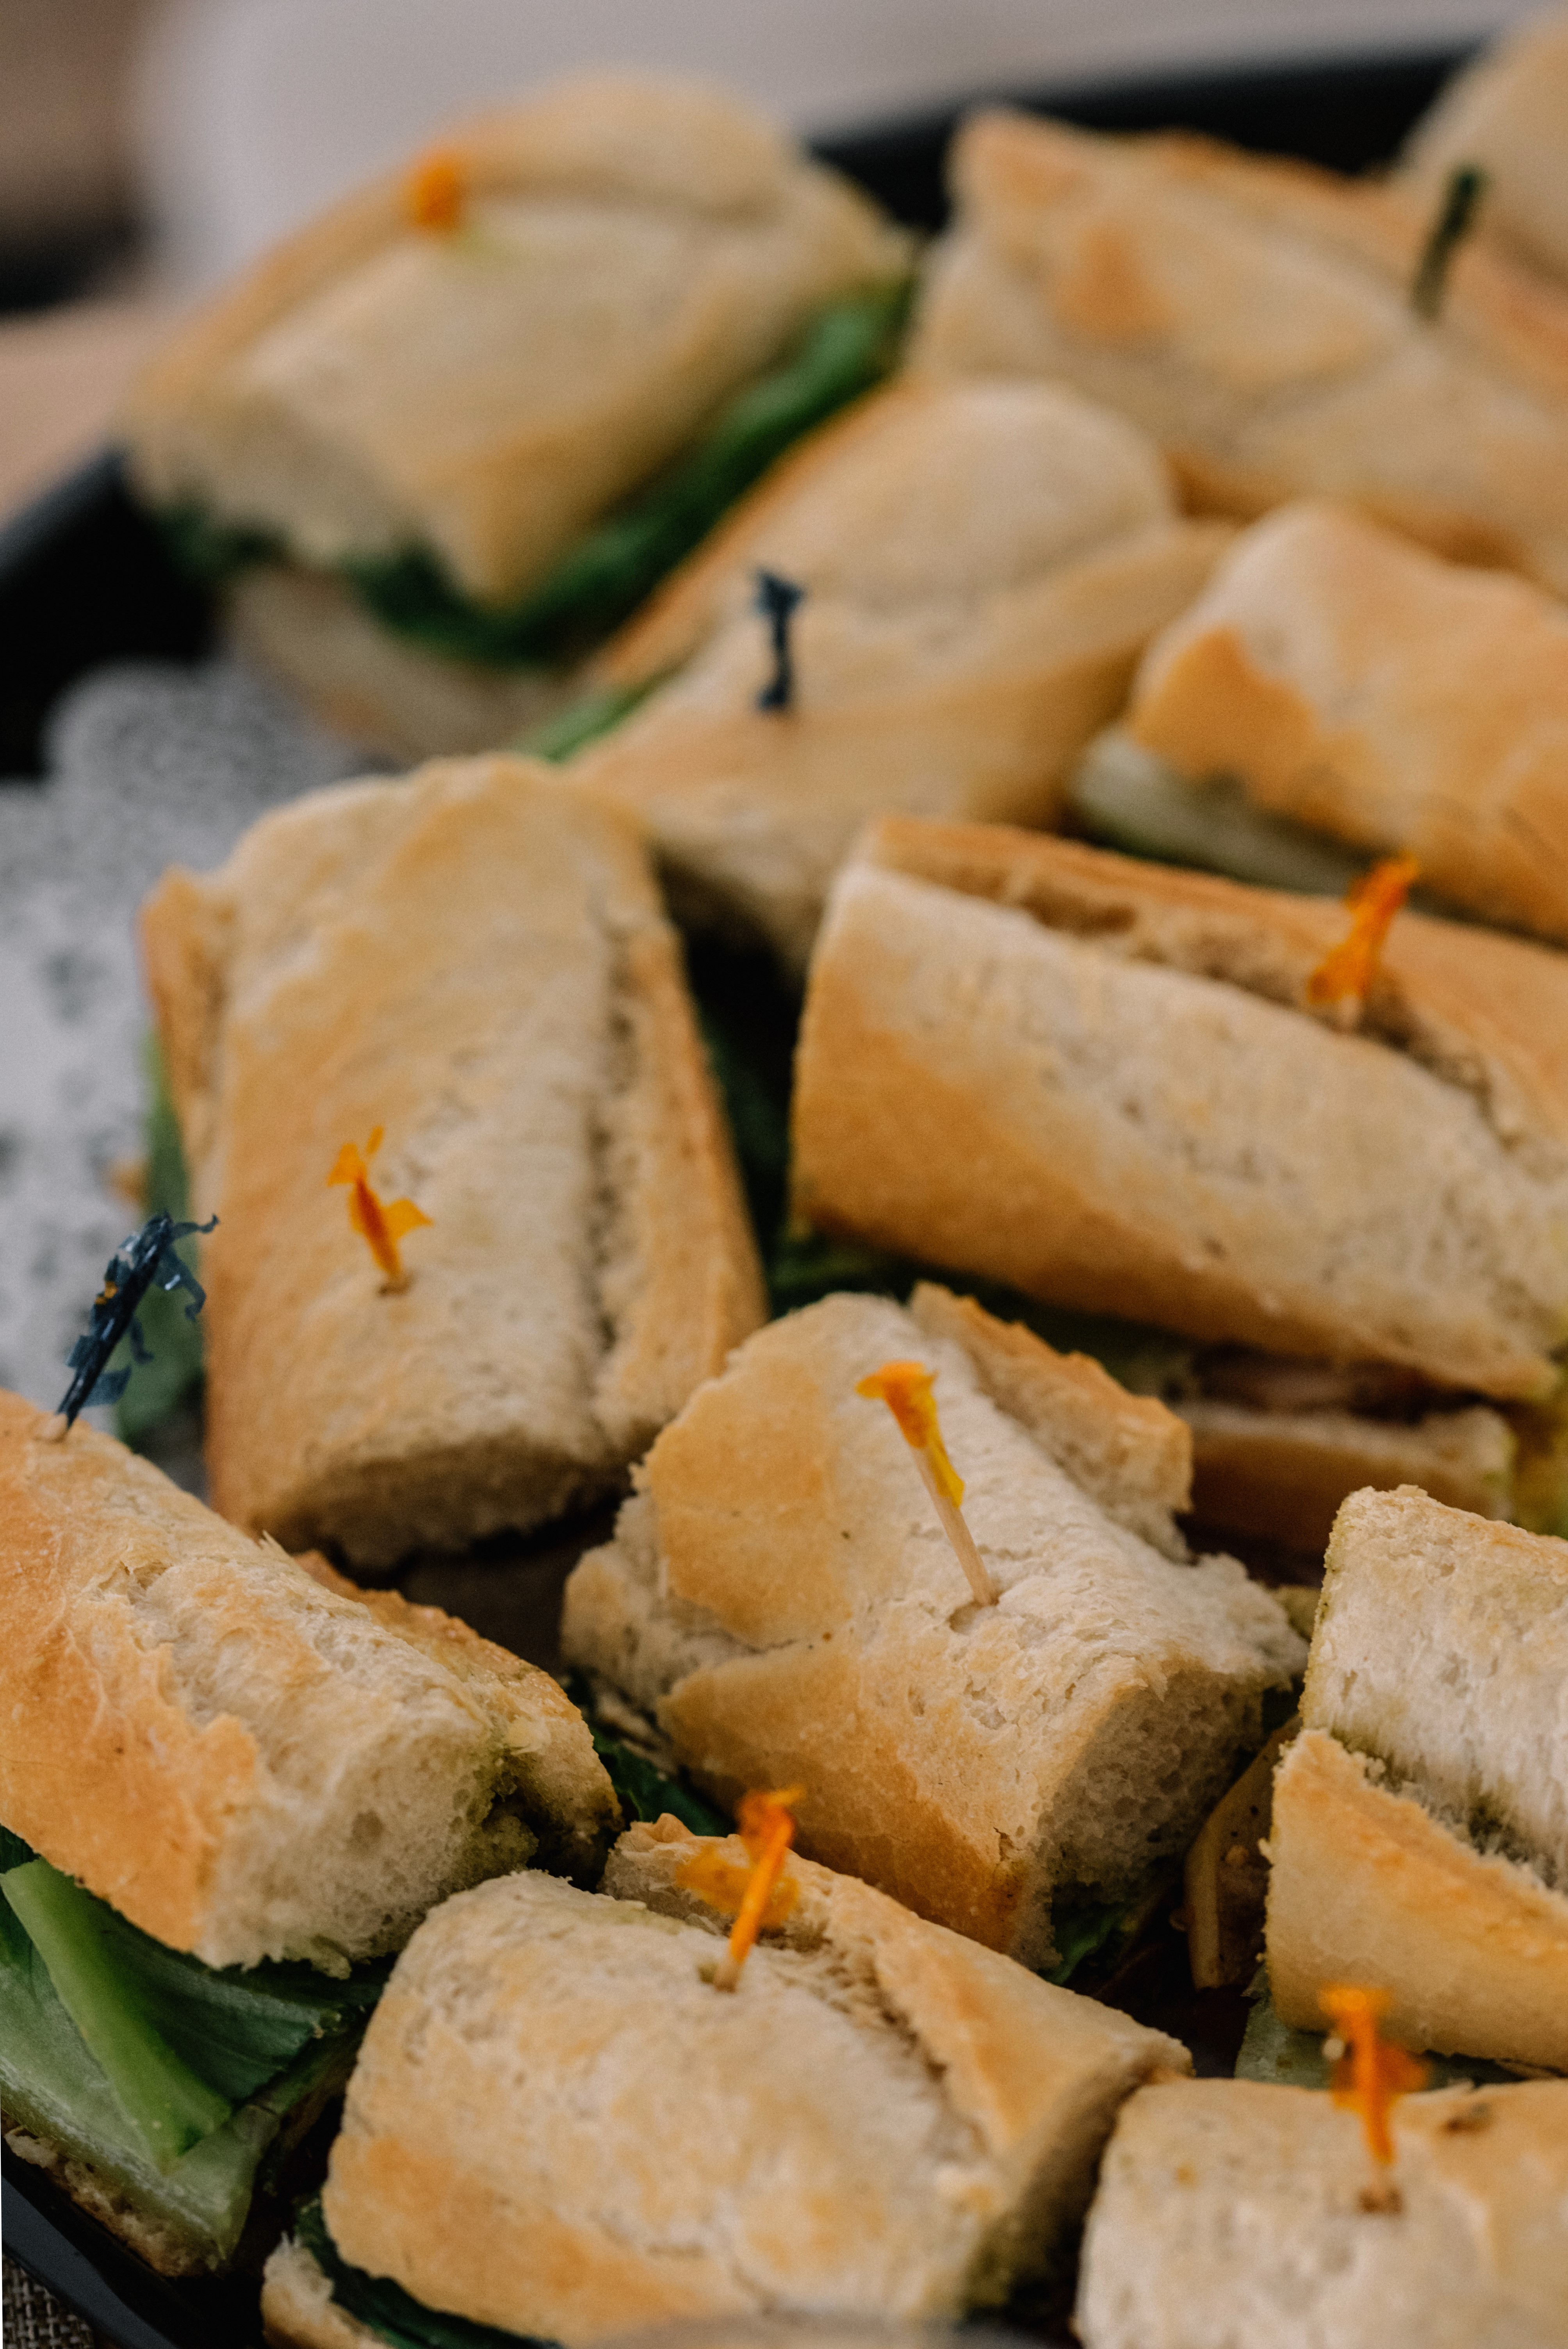 production catering and craft services for the glades | sandwiches